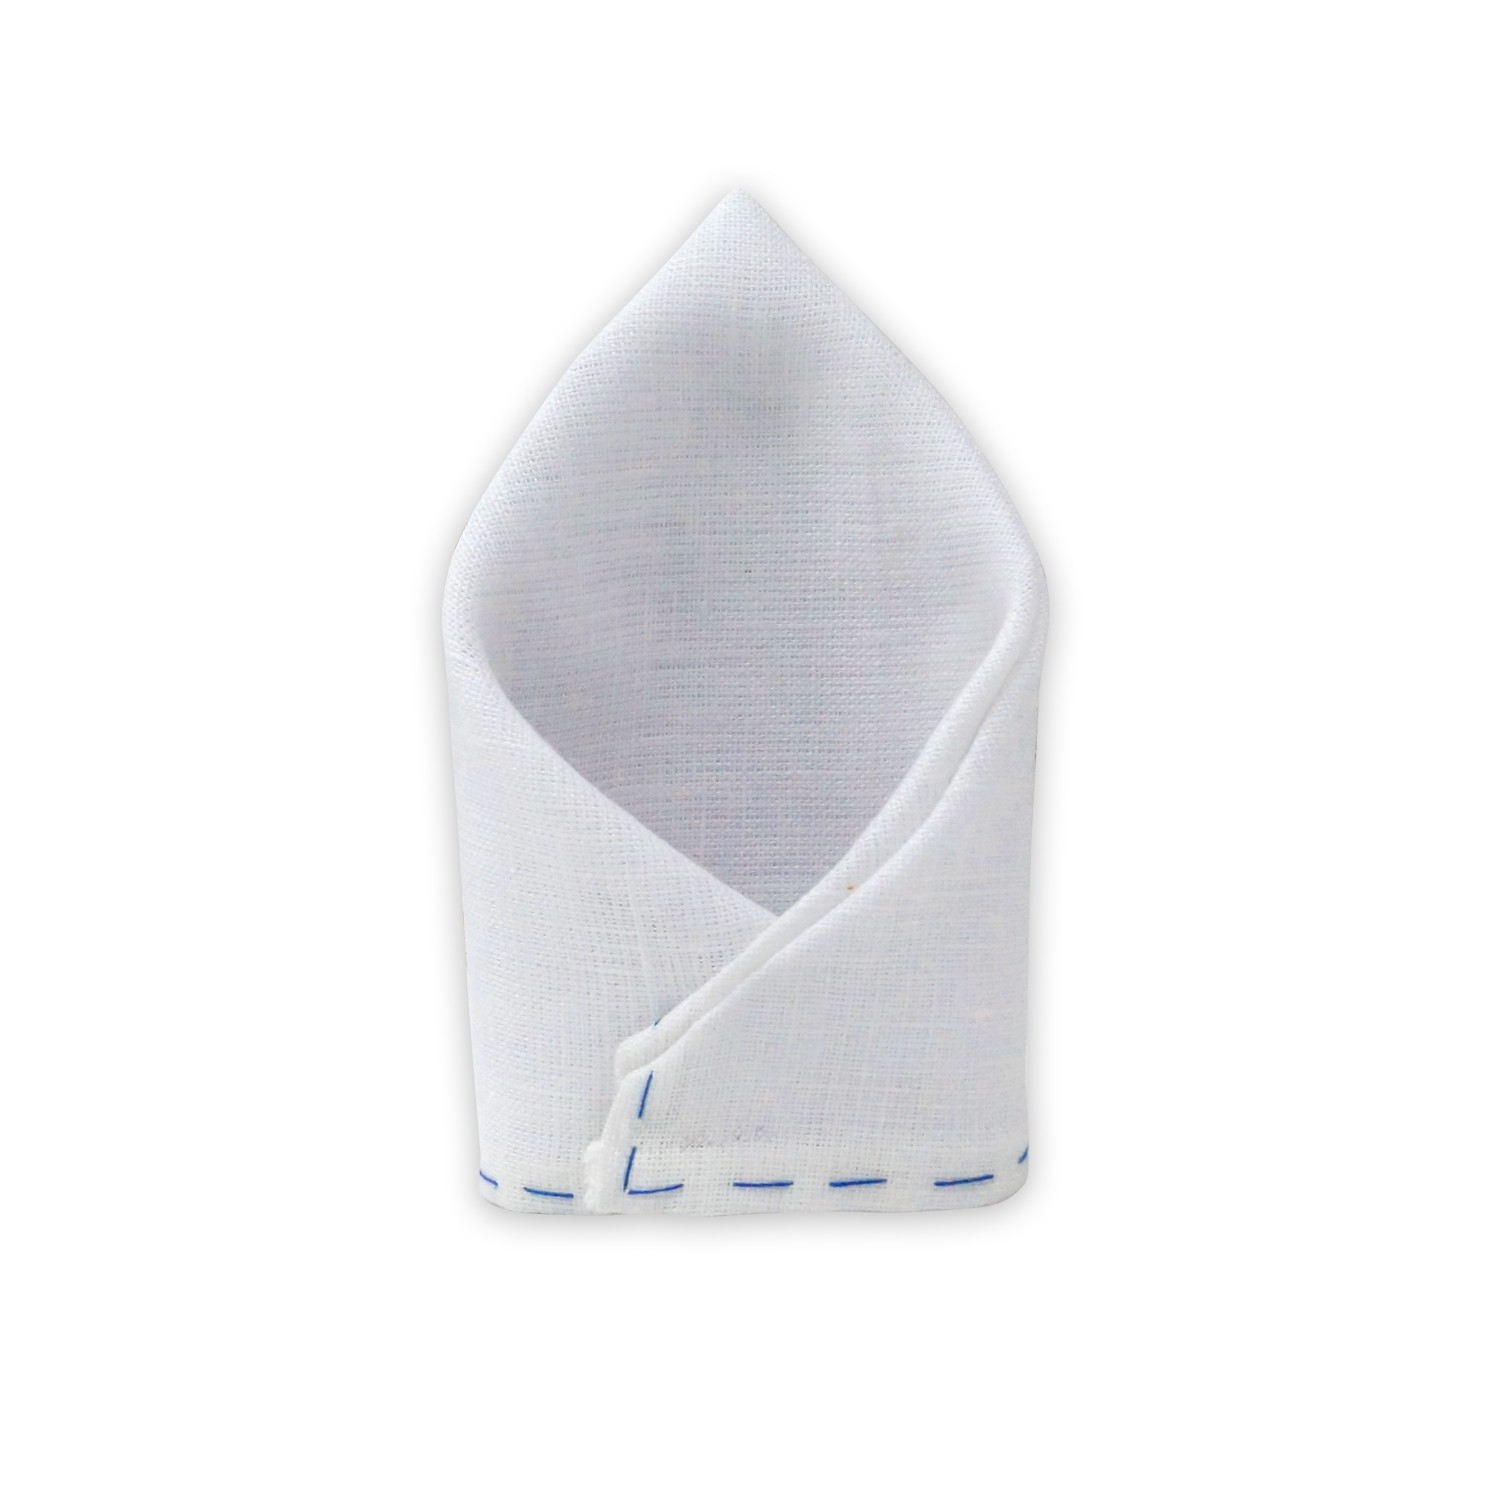 Fountain Solid - White/ Blue(100% Pure Linen Pocket Square)